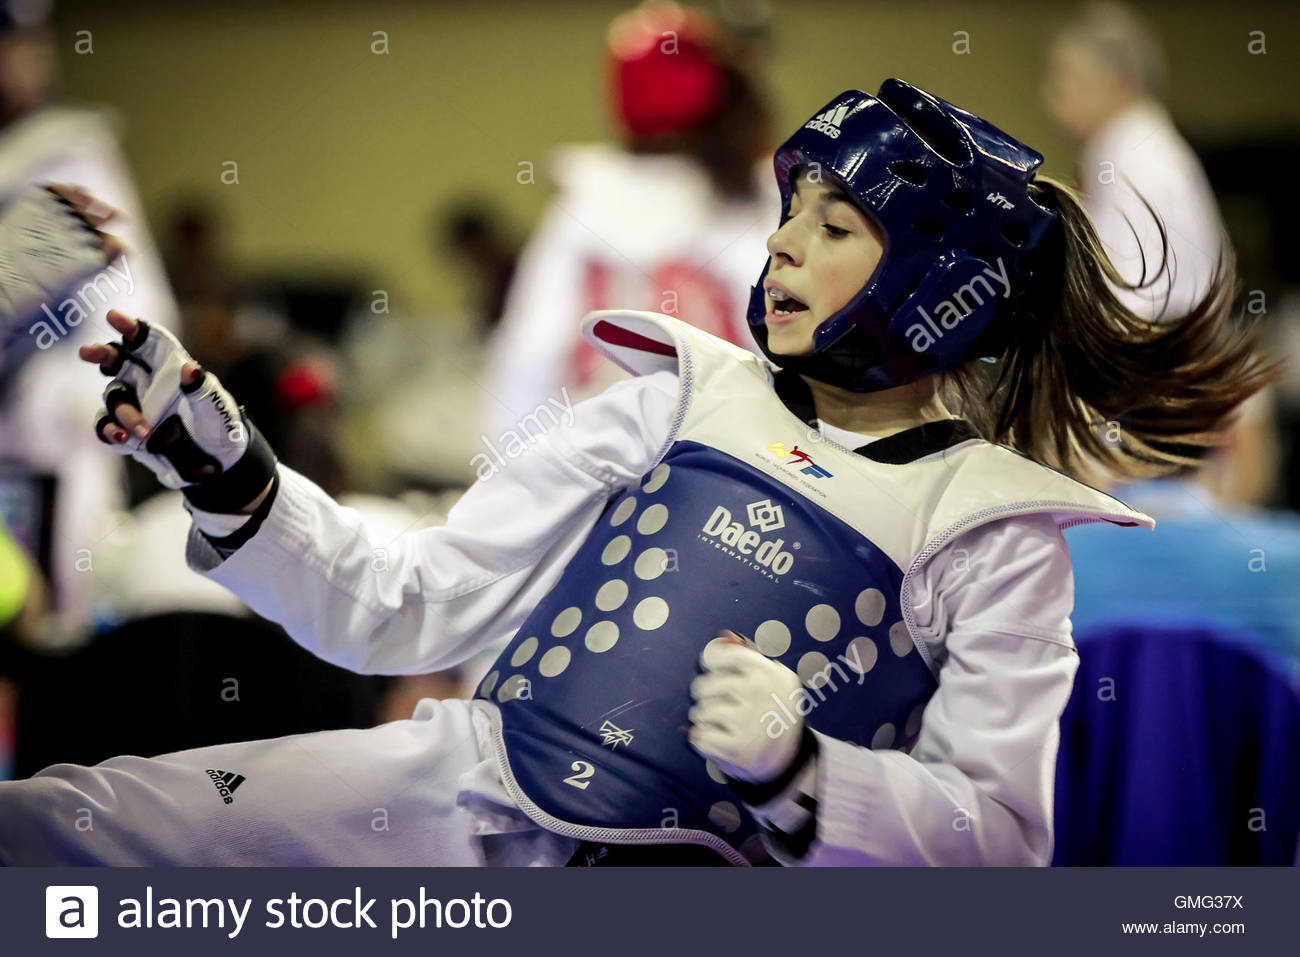 Athletes participating at the Canadian finals for the 2014 World Taekwondo Federation Youth Olympic Games, in Montreal, - Stock Image